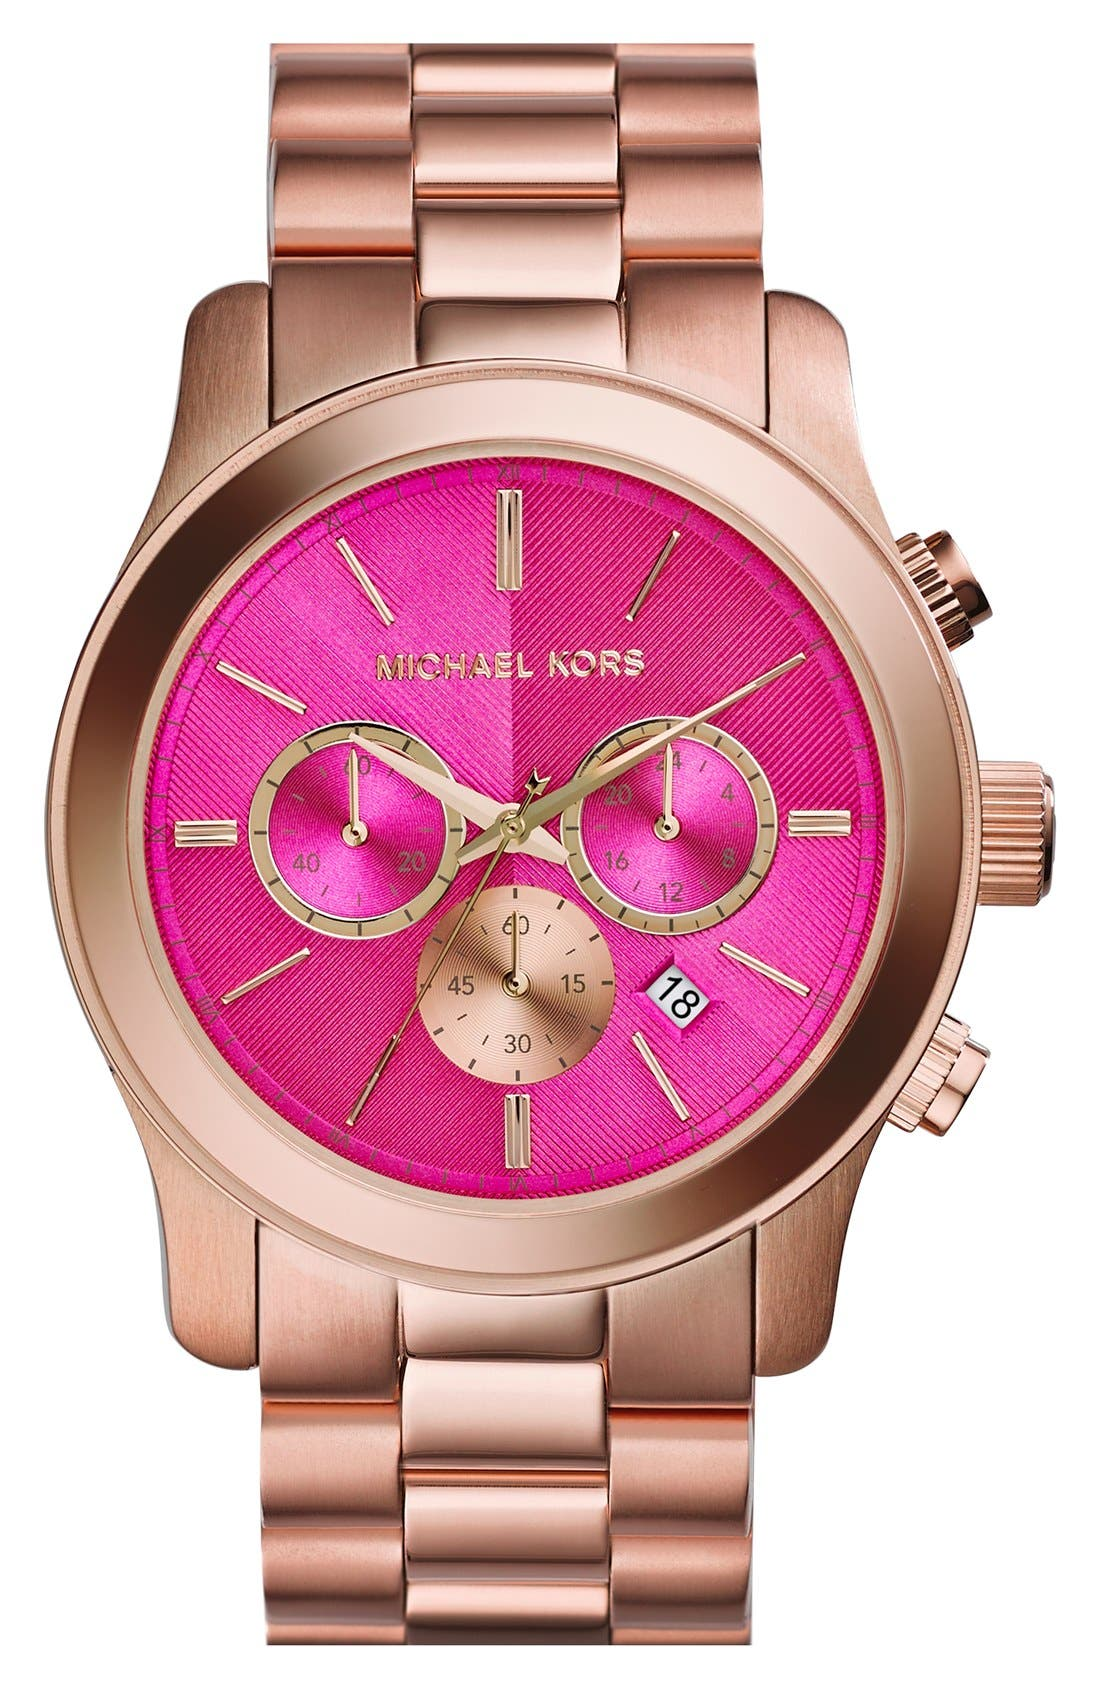 Main Image - Michael Kors 'Large Runway' Rose Gold Plated Watch, 45mm